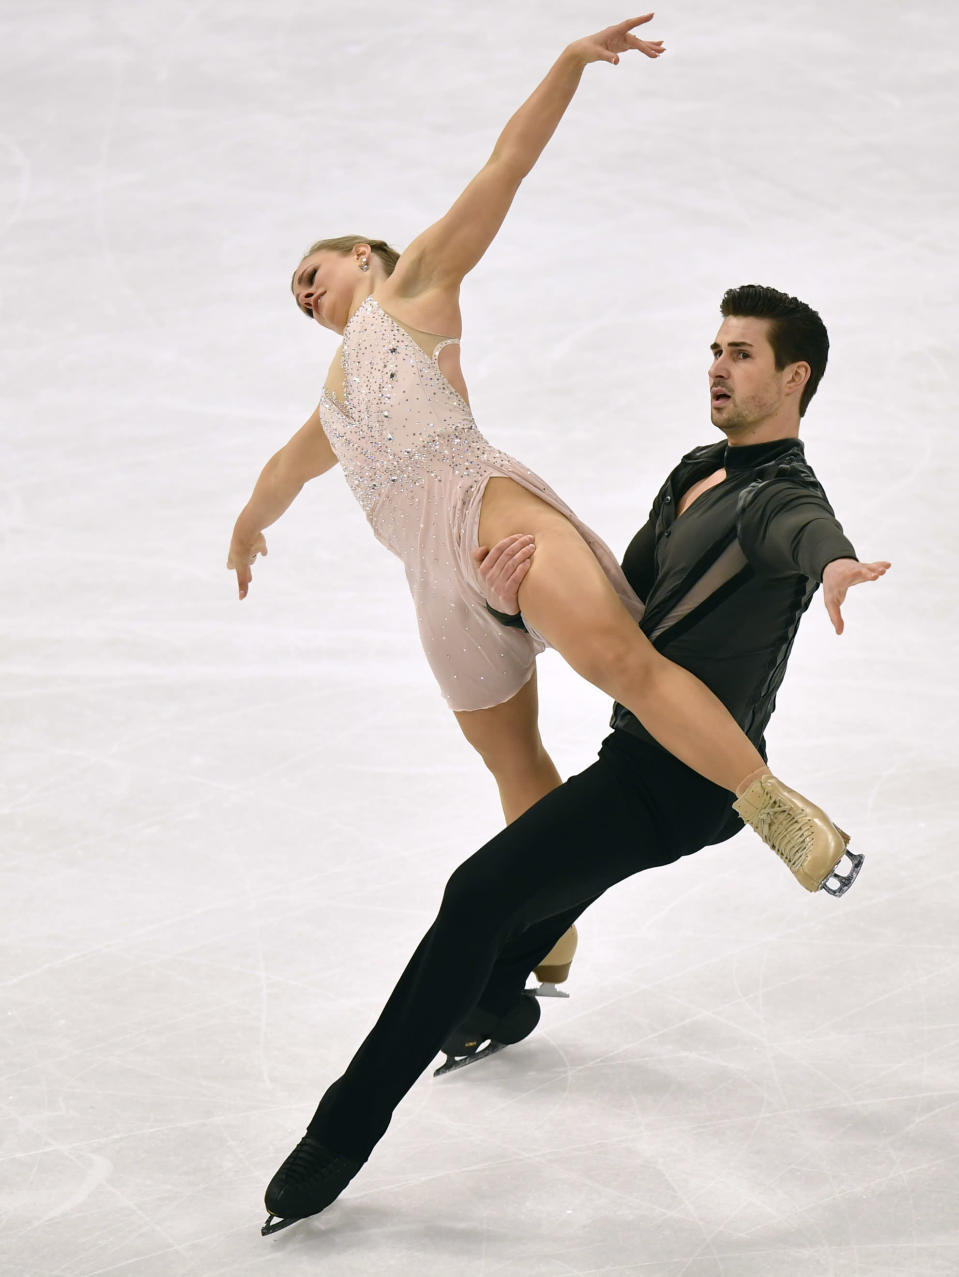 Madison Hubbell and Zachary Donohue of the USA perform during the Ice Dance-Free Dance at the Figure Skating World Championships in Stockholm, Sweden, Saturday, March 27, 2021. (AP Photo/Martin Meissner)